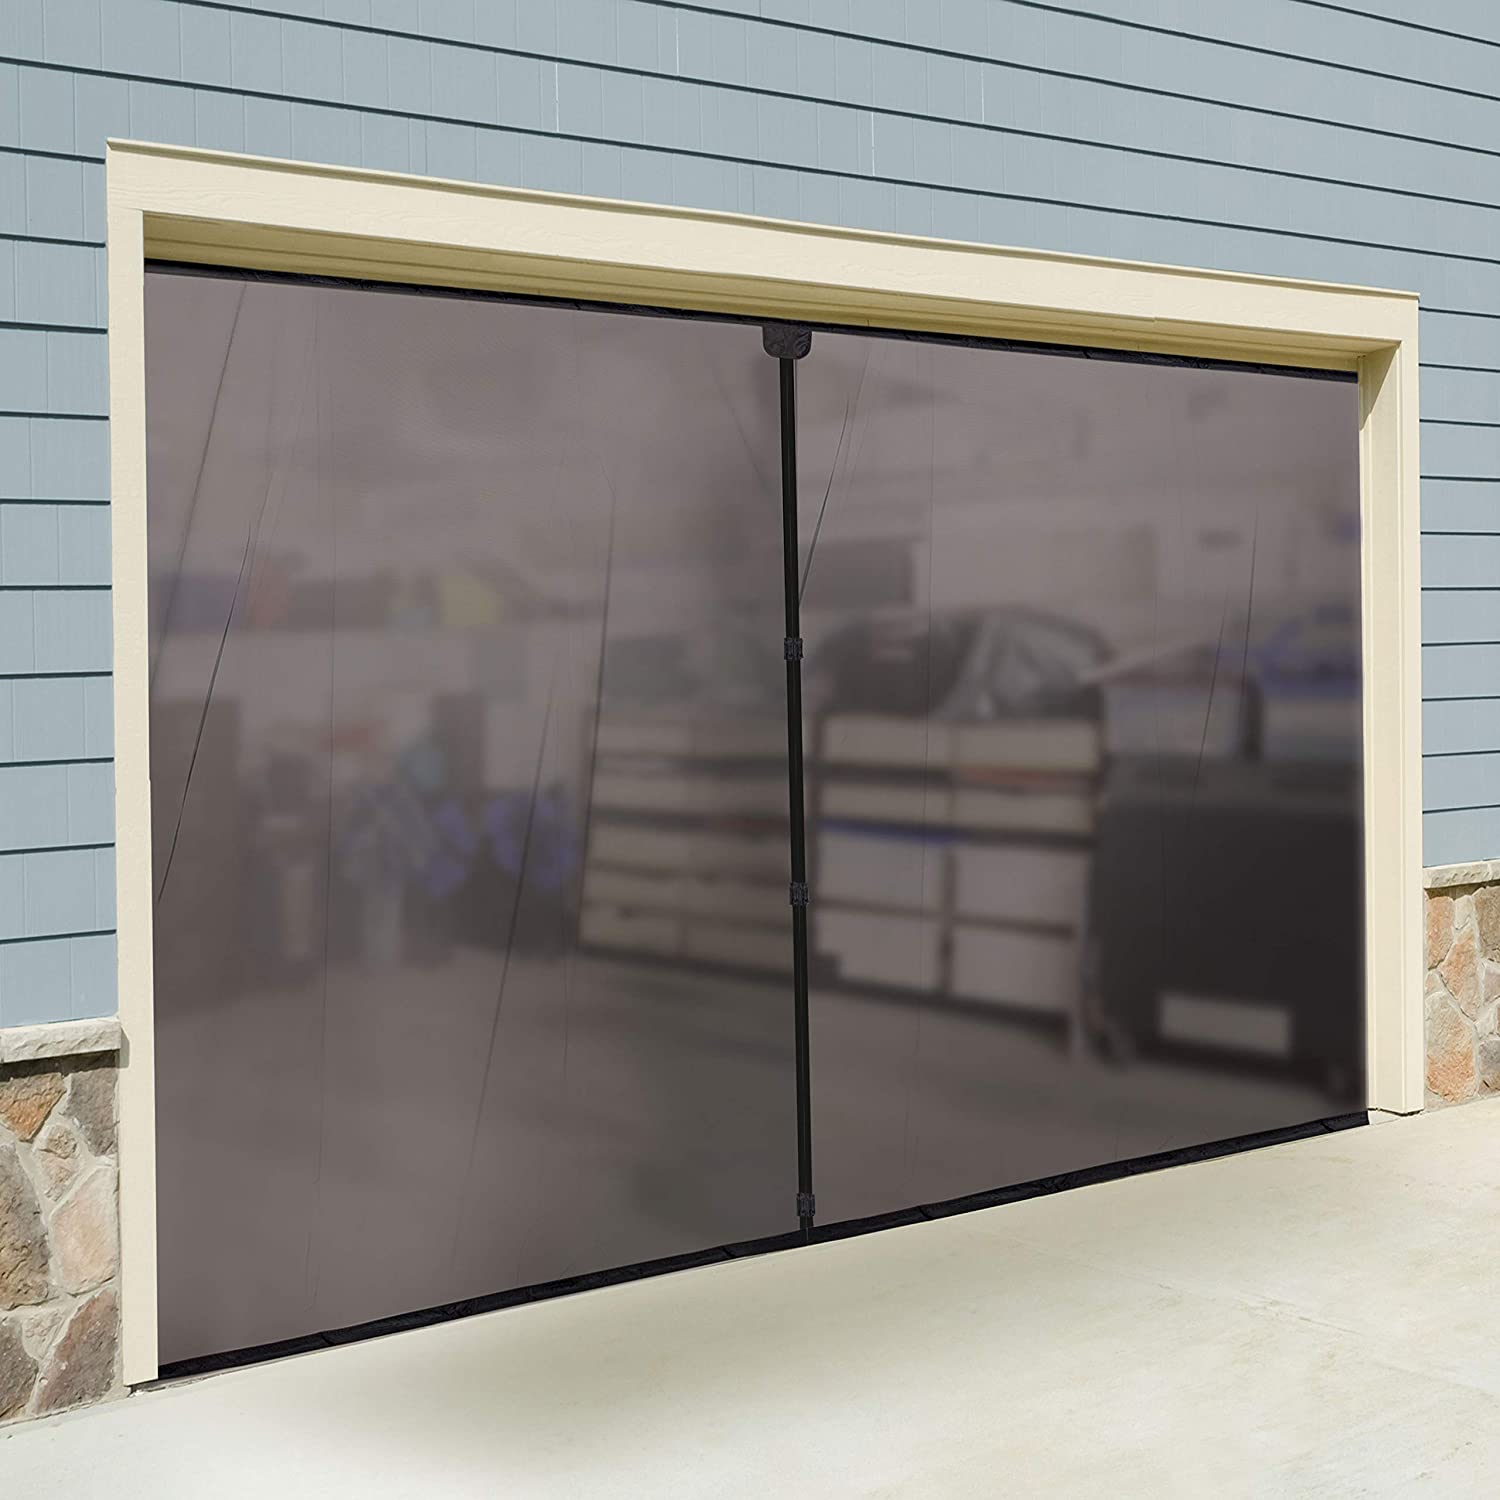 Jobar's JB4869 Double Garage Screen Door – Allows Air Circulation – Prevents Bugs and Insects from Entering – Nylon Mesh Material – Black